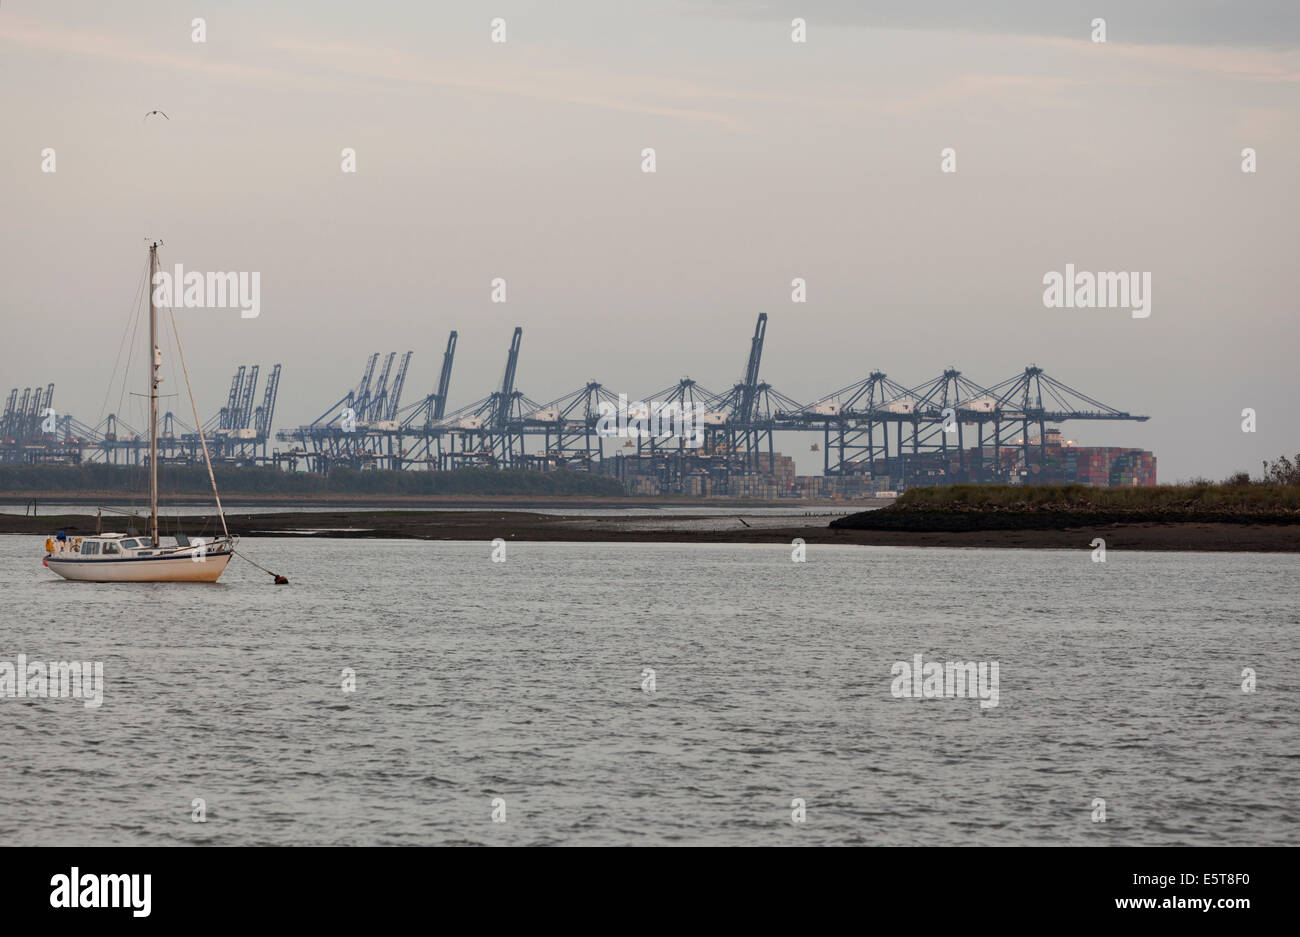 Yacht moored on River Orwell, Suffolk and cranes at Felixstowe Docks, taken at dusk. - Stock Image